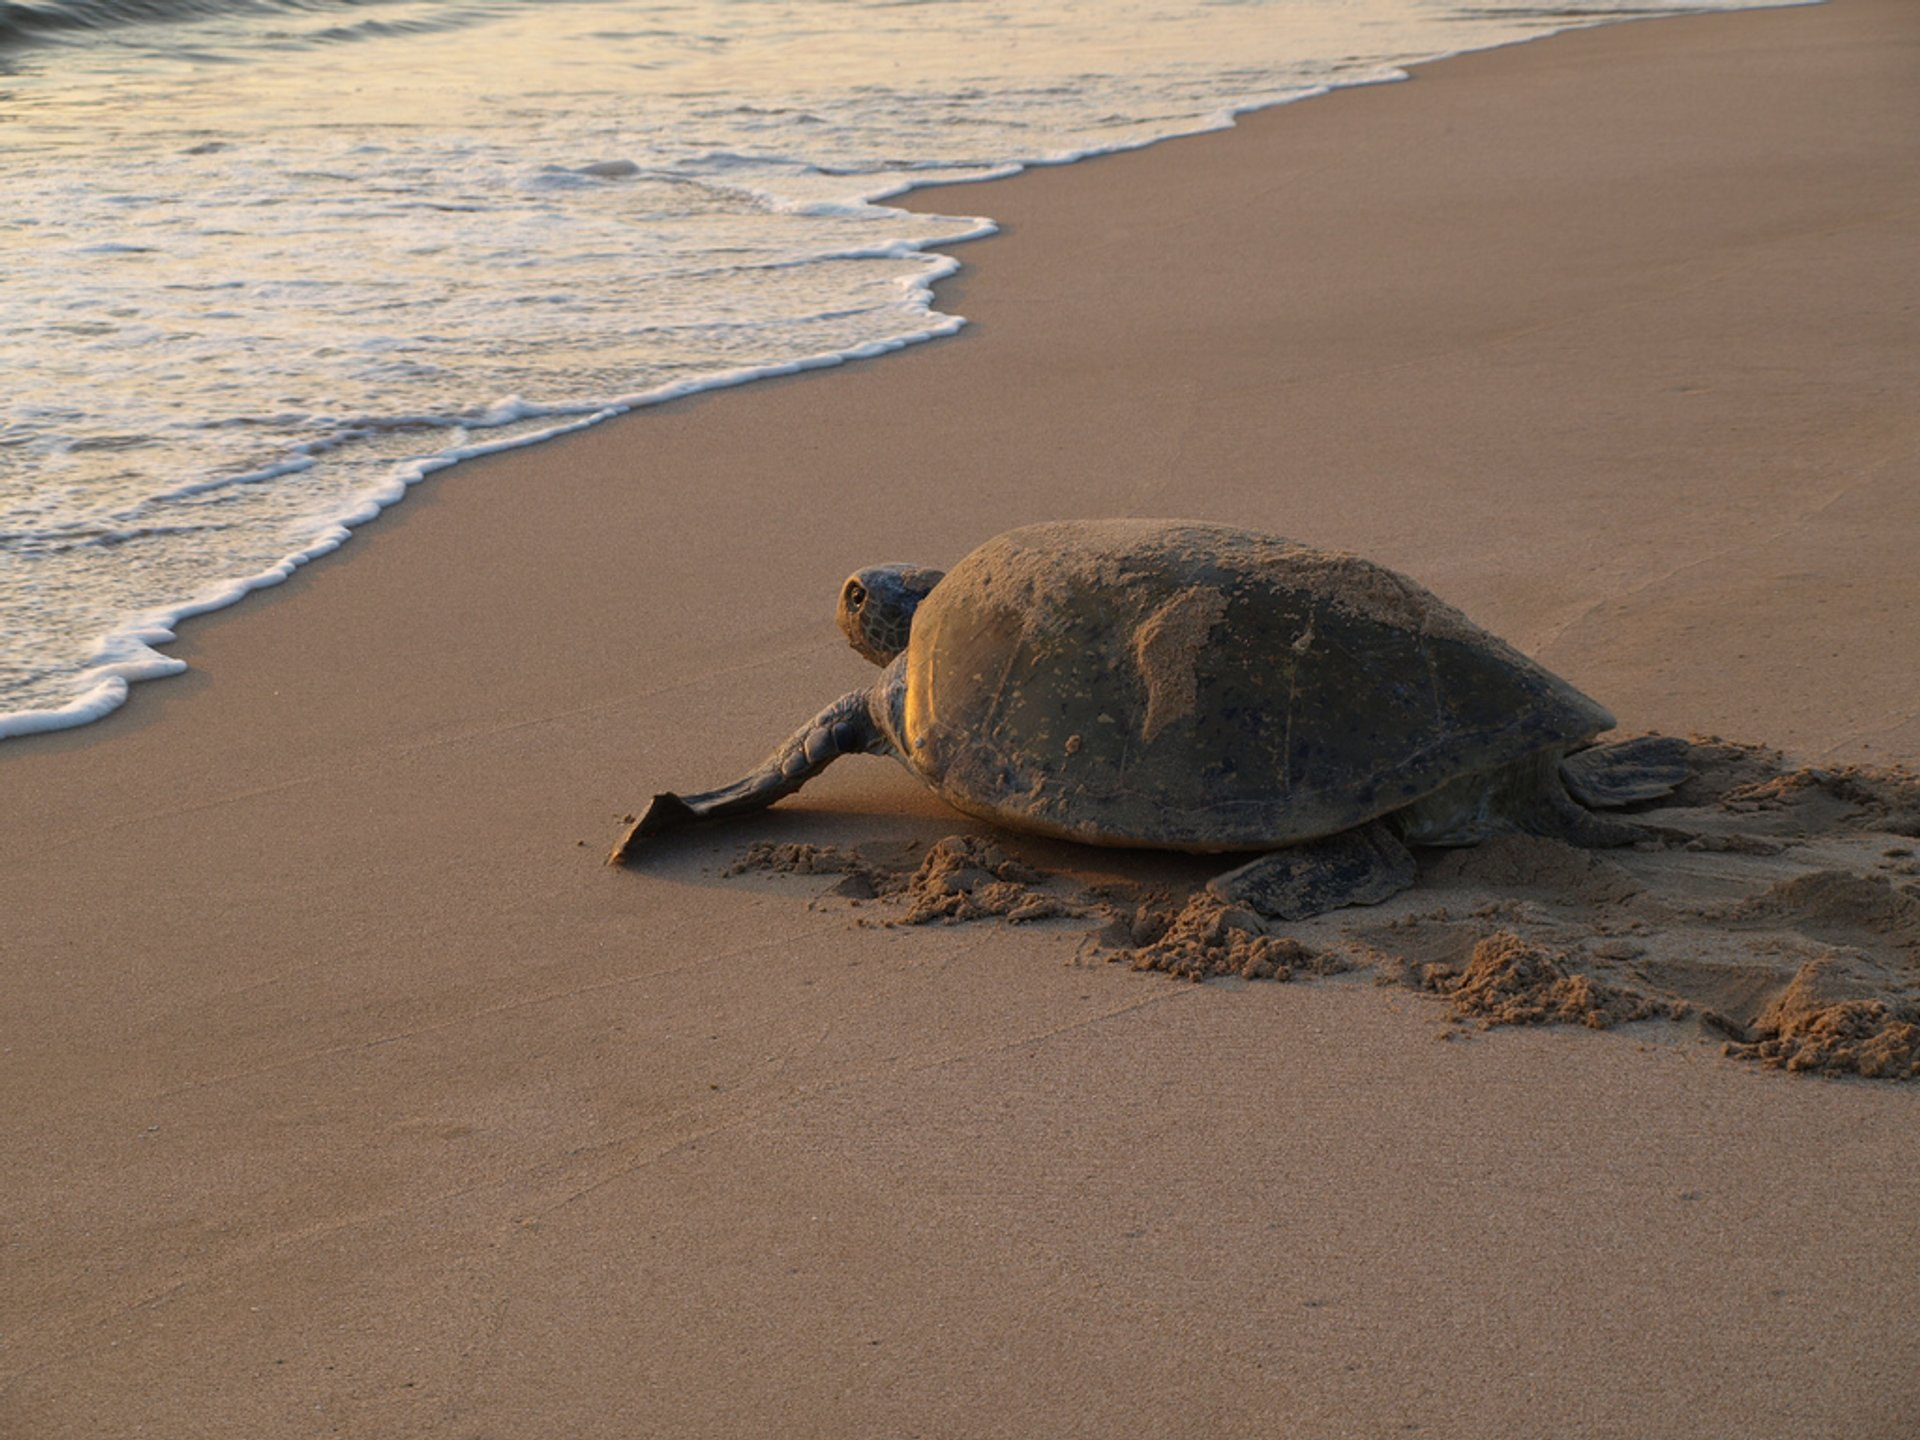 Turtle Nesting and Hatching in Oman 2020 - Best Time